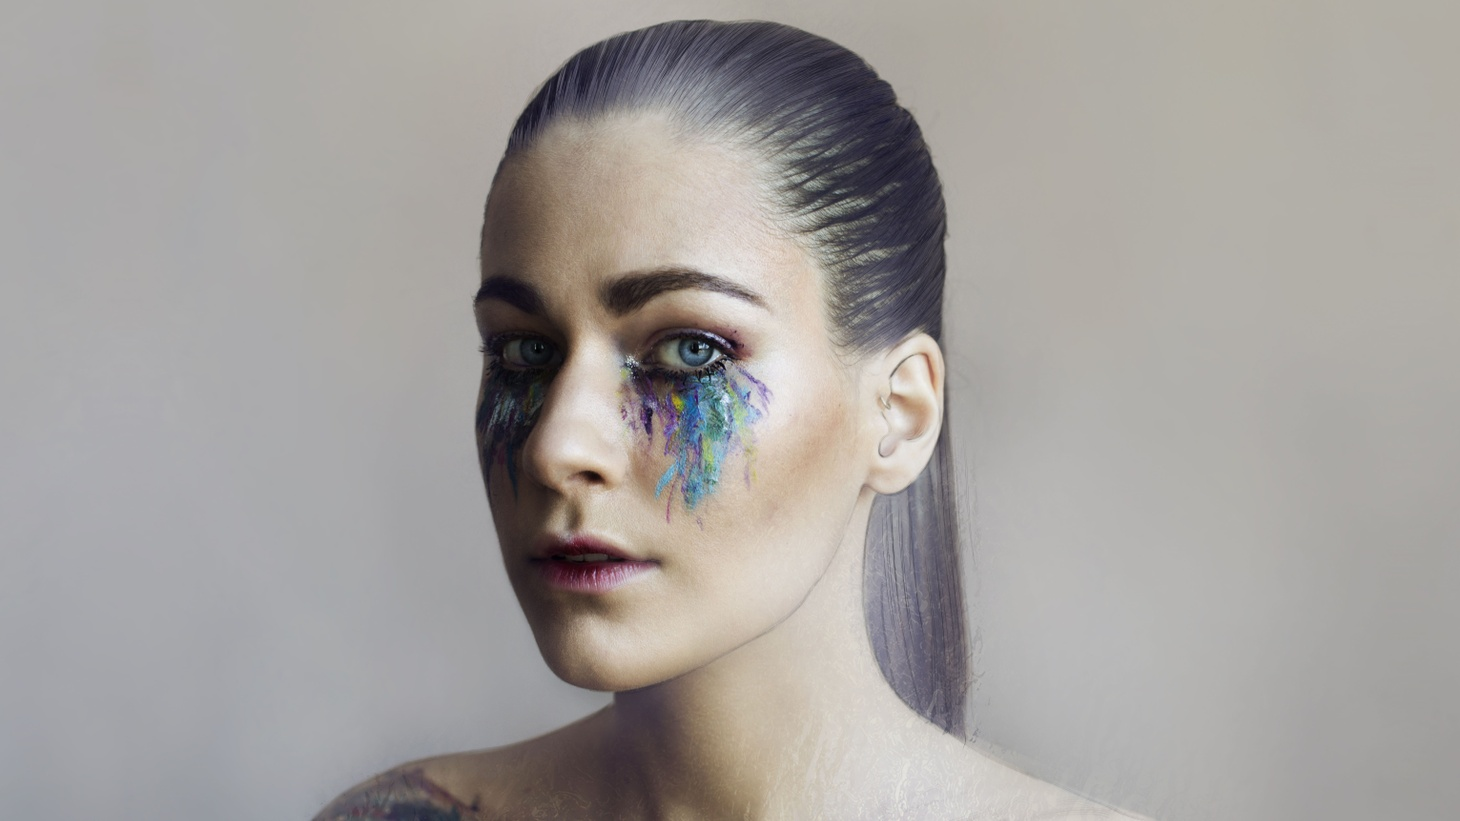 Norwegian multi-instrumentalist Farao fits firmly in the tradition of adventurous Scandinavian musicians, precisely by breaking with tradition. Much of the album is built around an electronic backdrop, but her songs are never beholden to them.